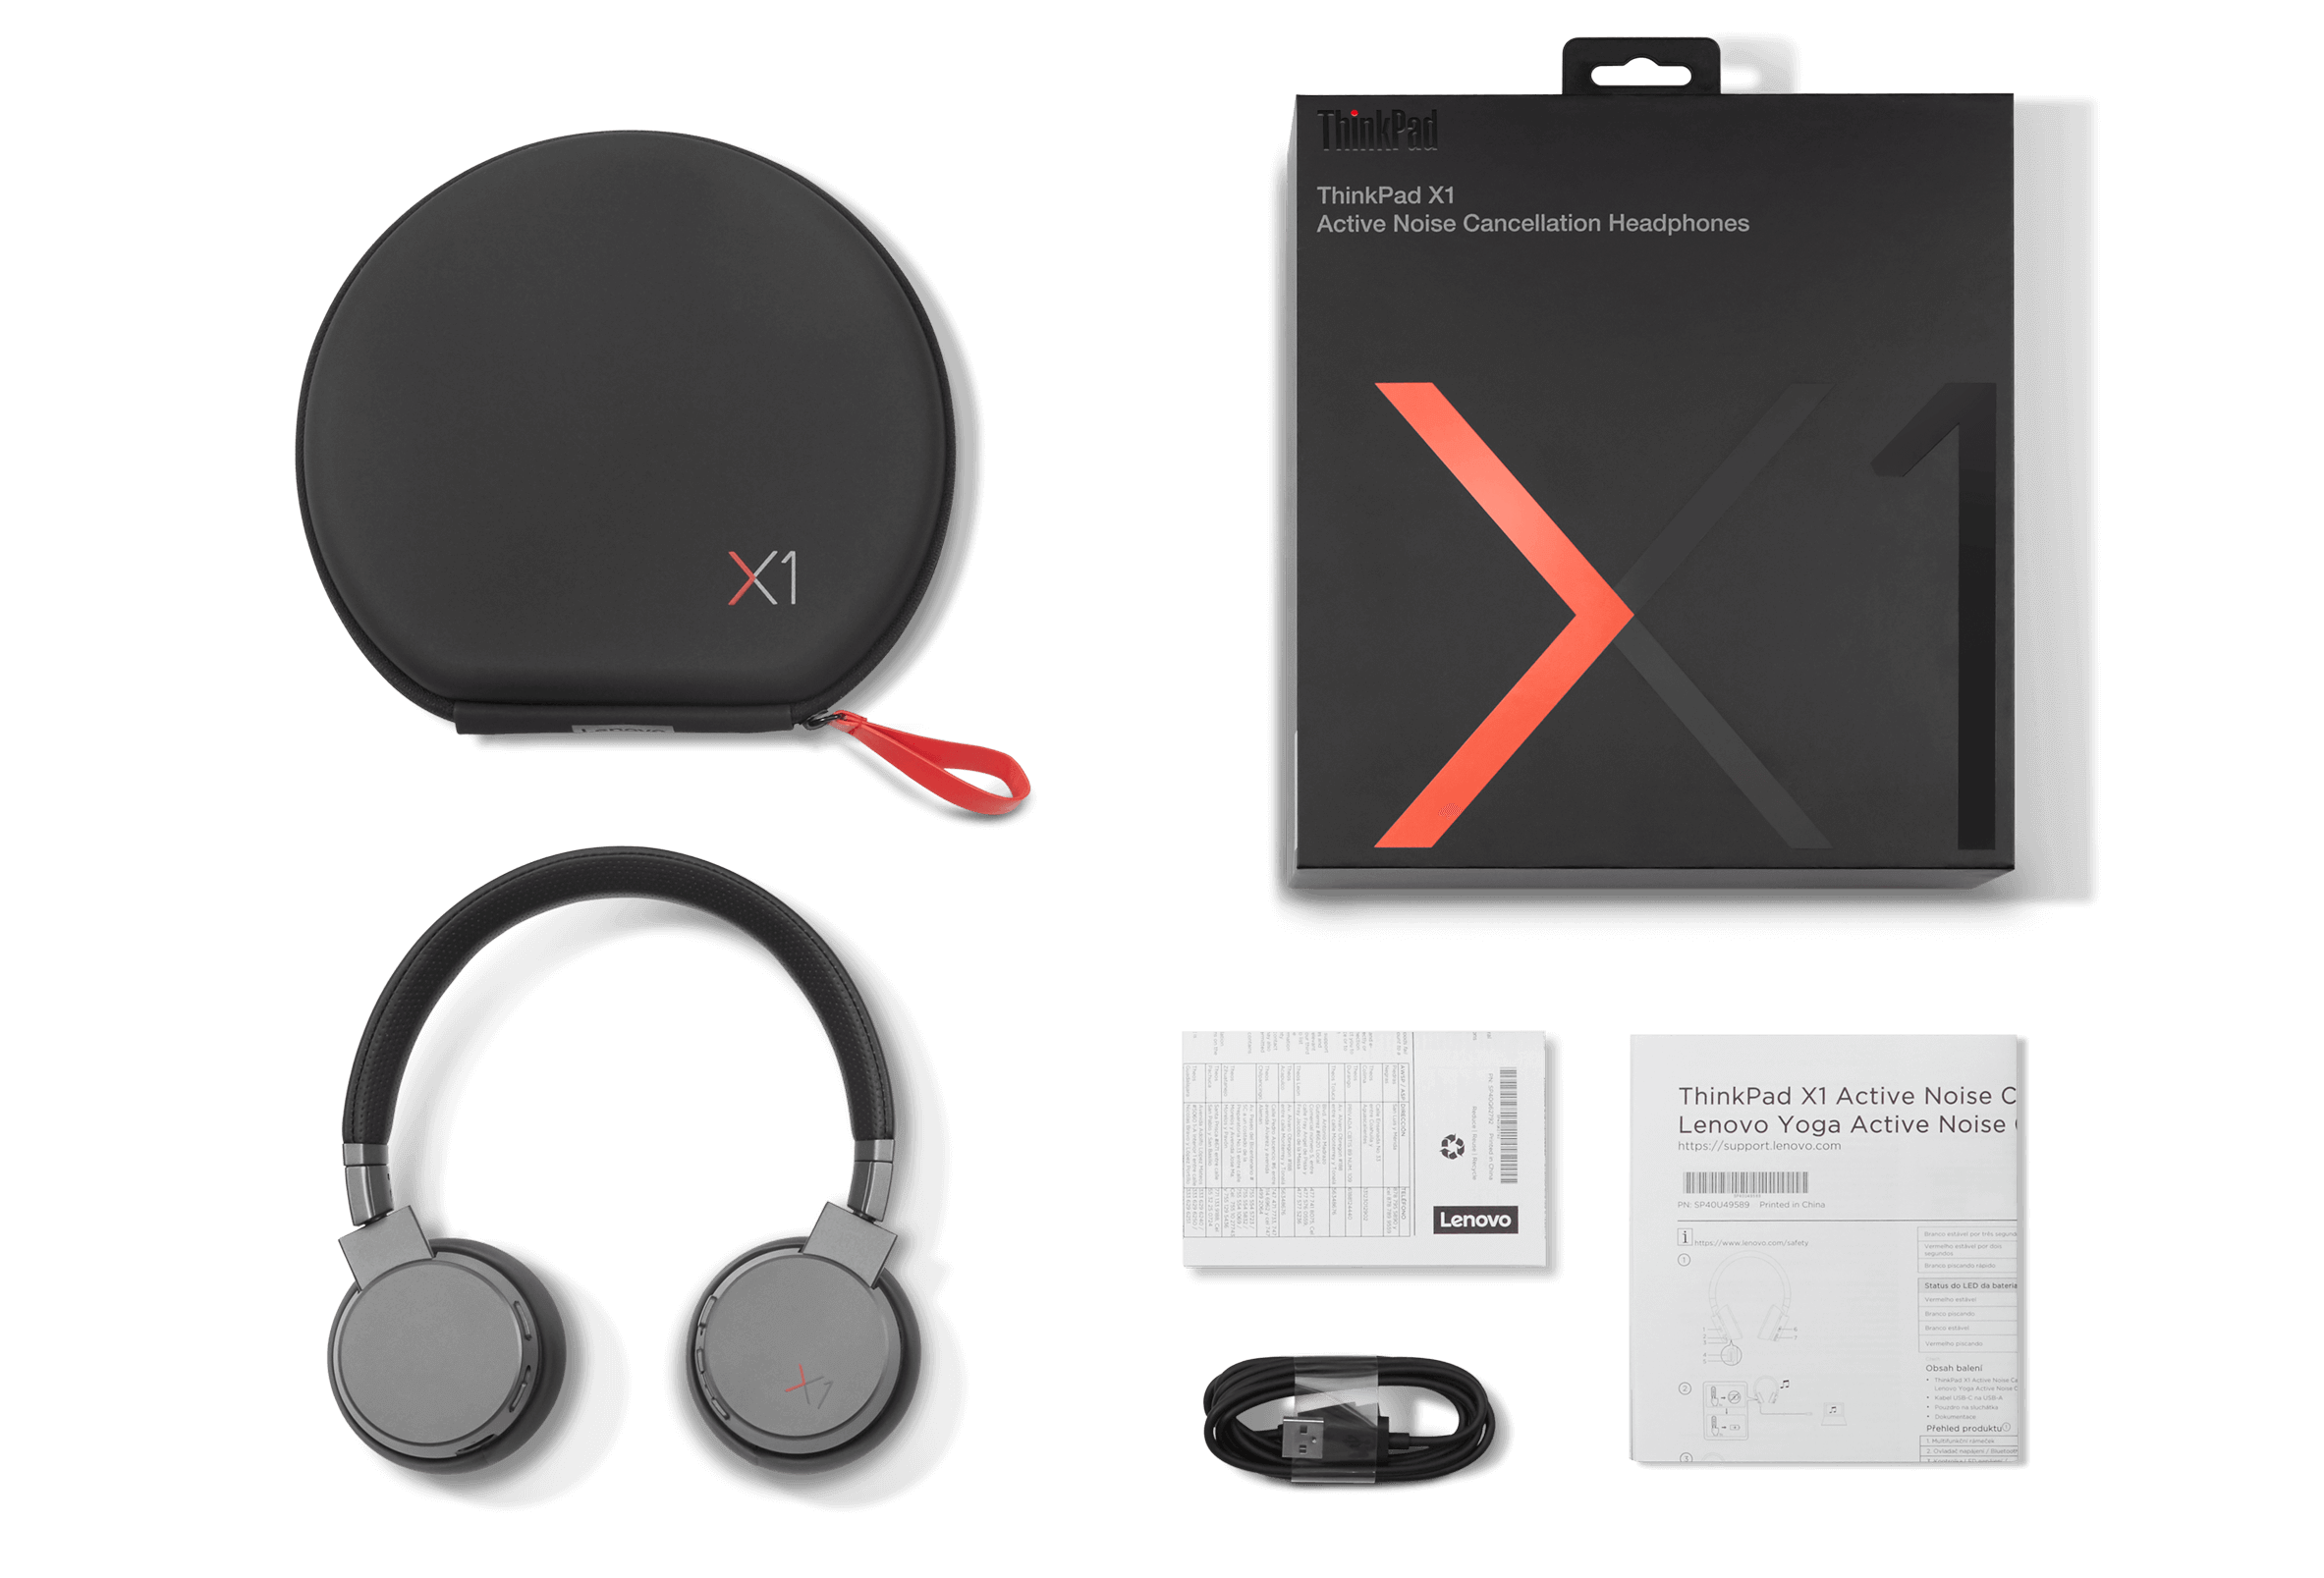 ThinkPad X1 ANC Headphones Whats in the Box View